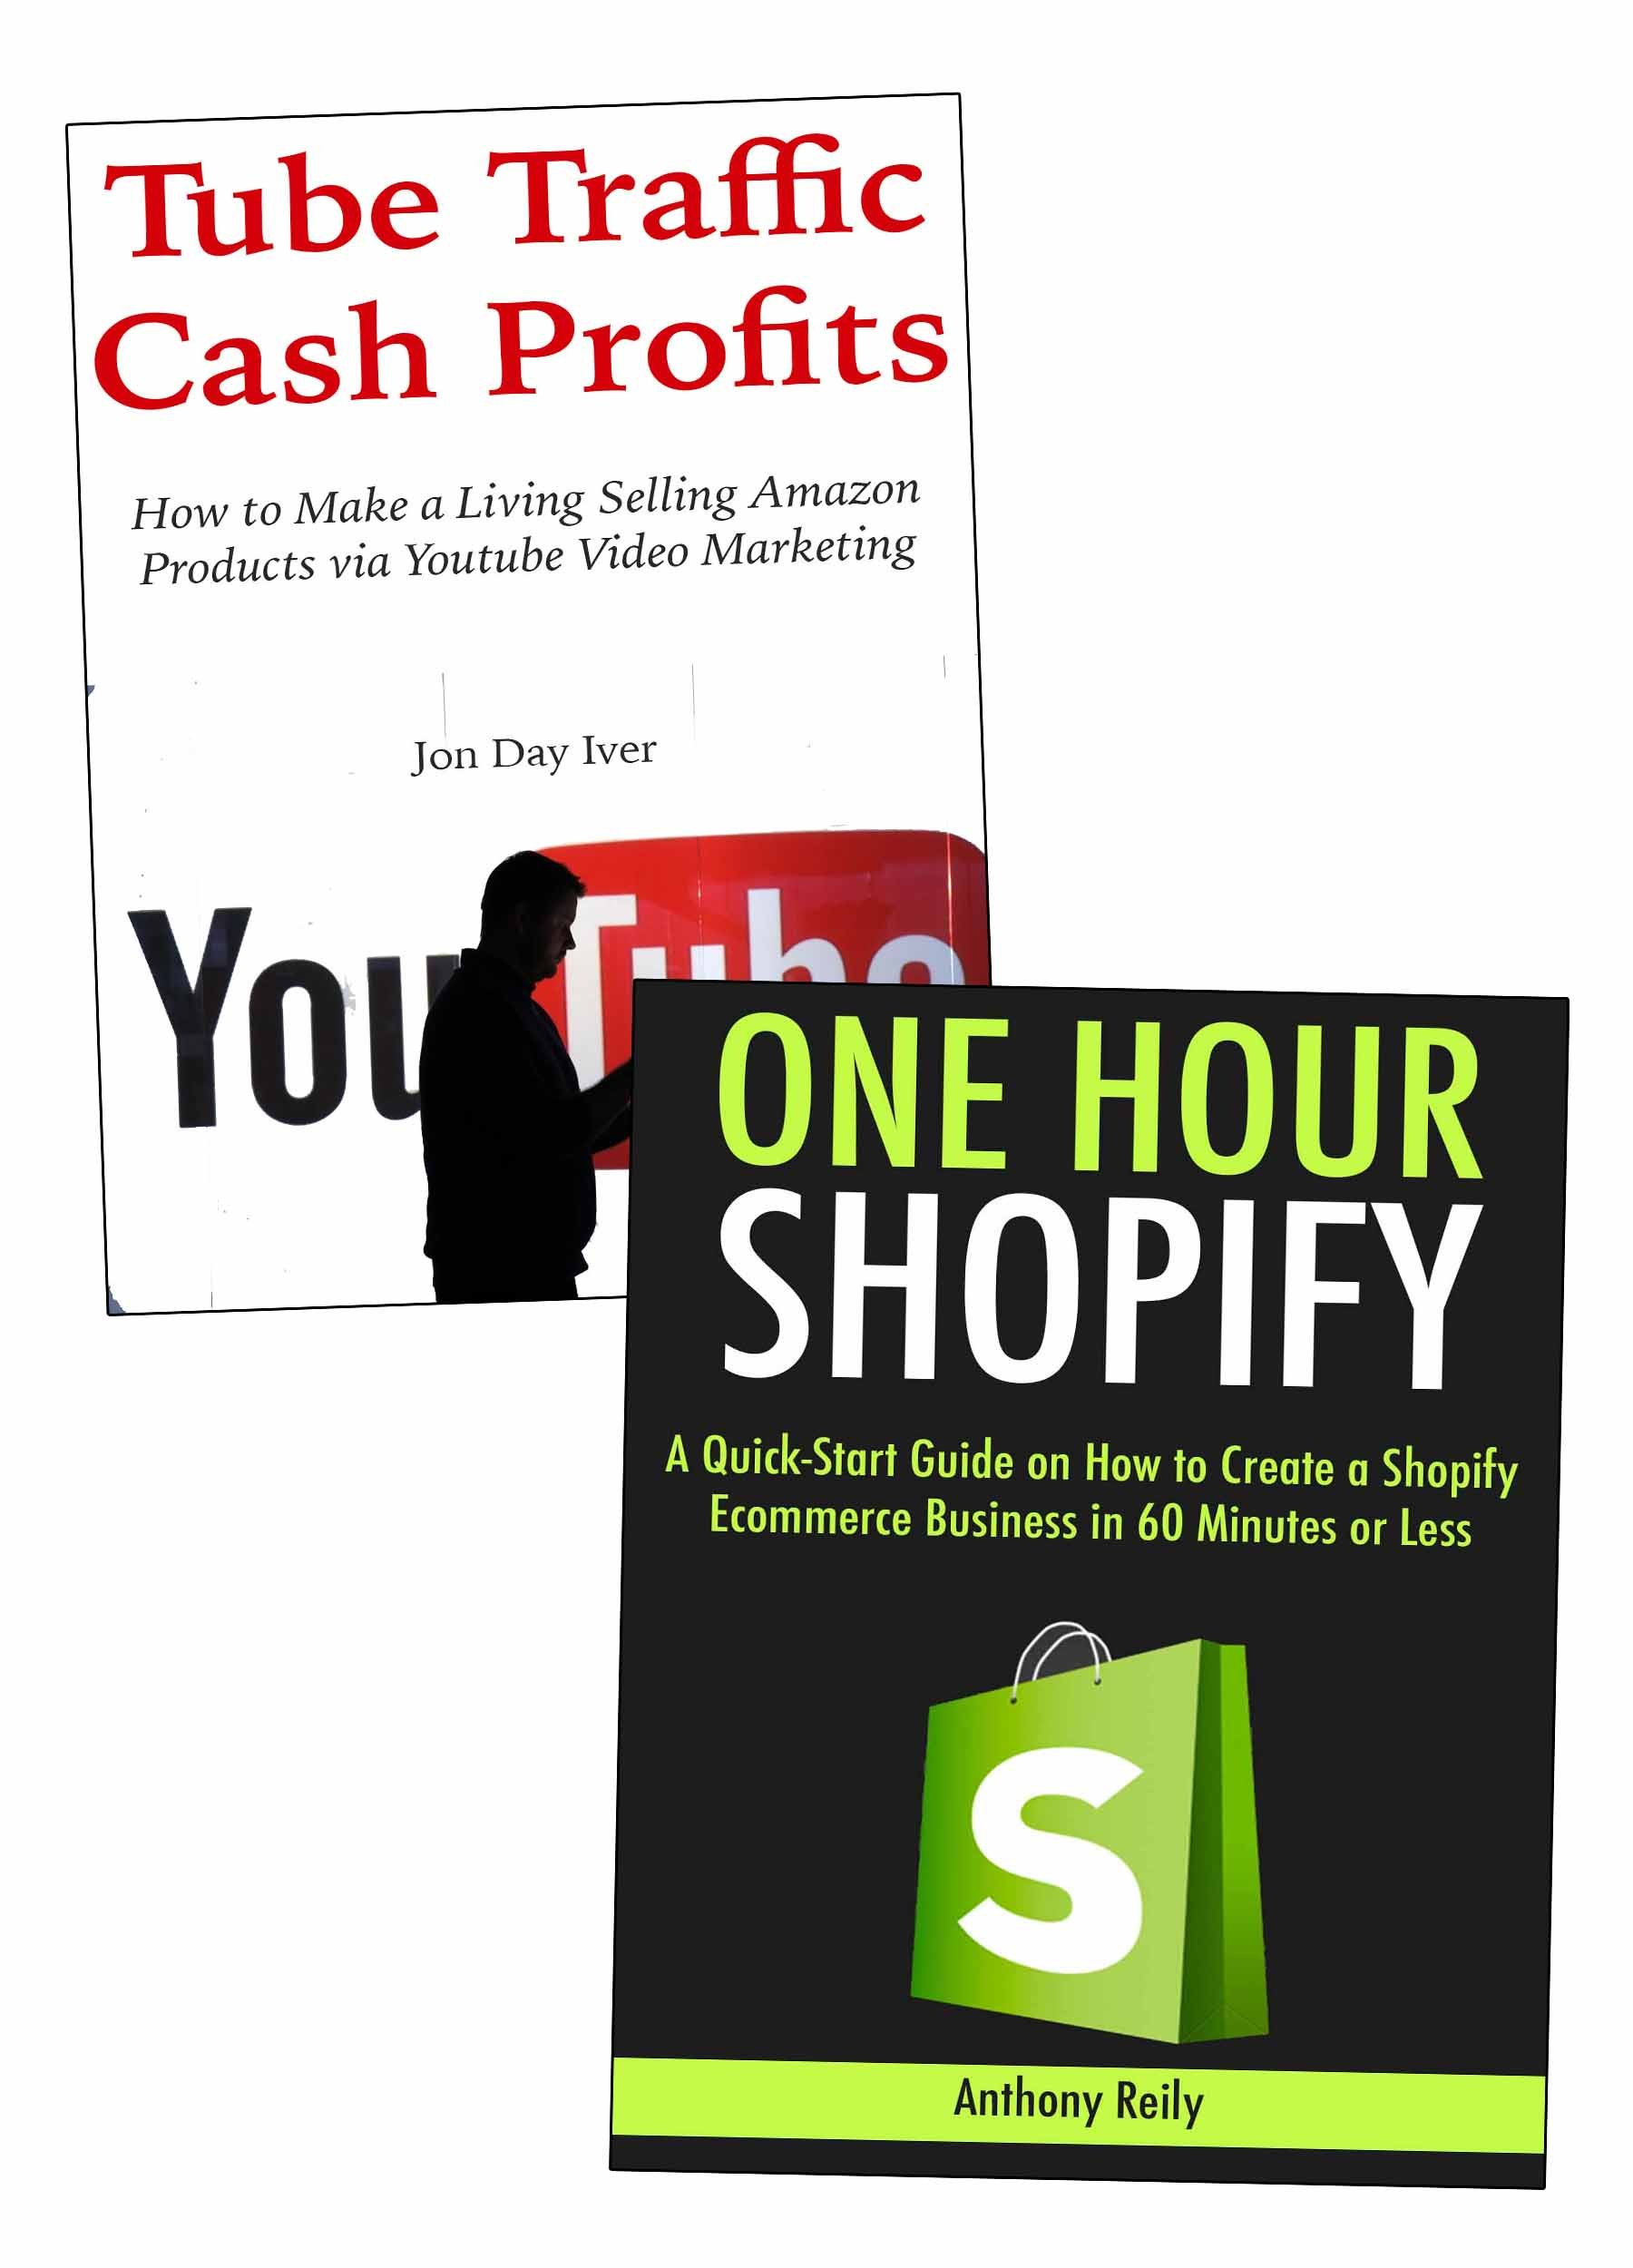 How to Sell Products Online Without Your Own Inventory: Shopify & YouTube Business Ideas